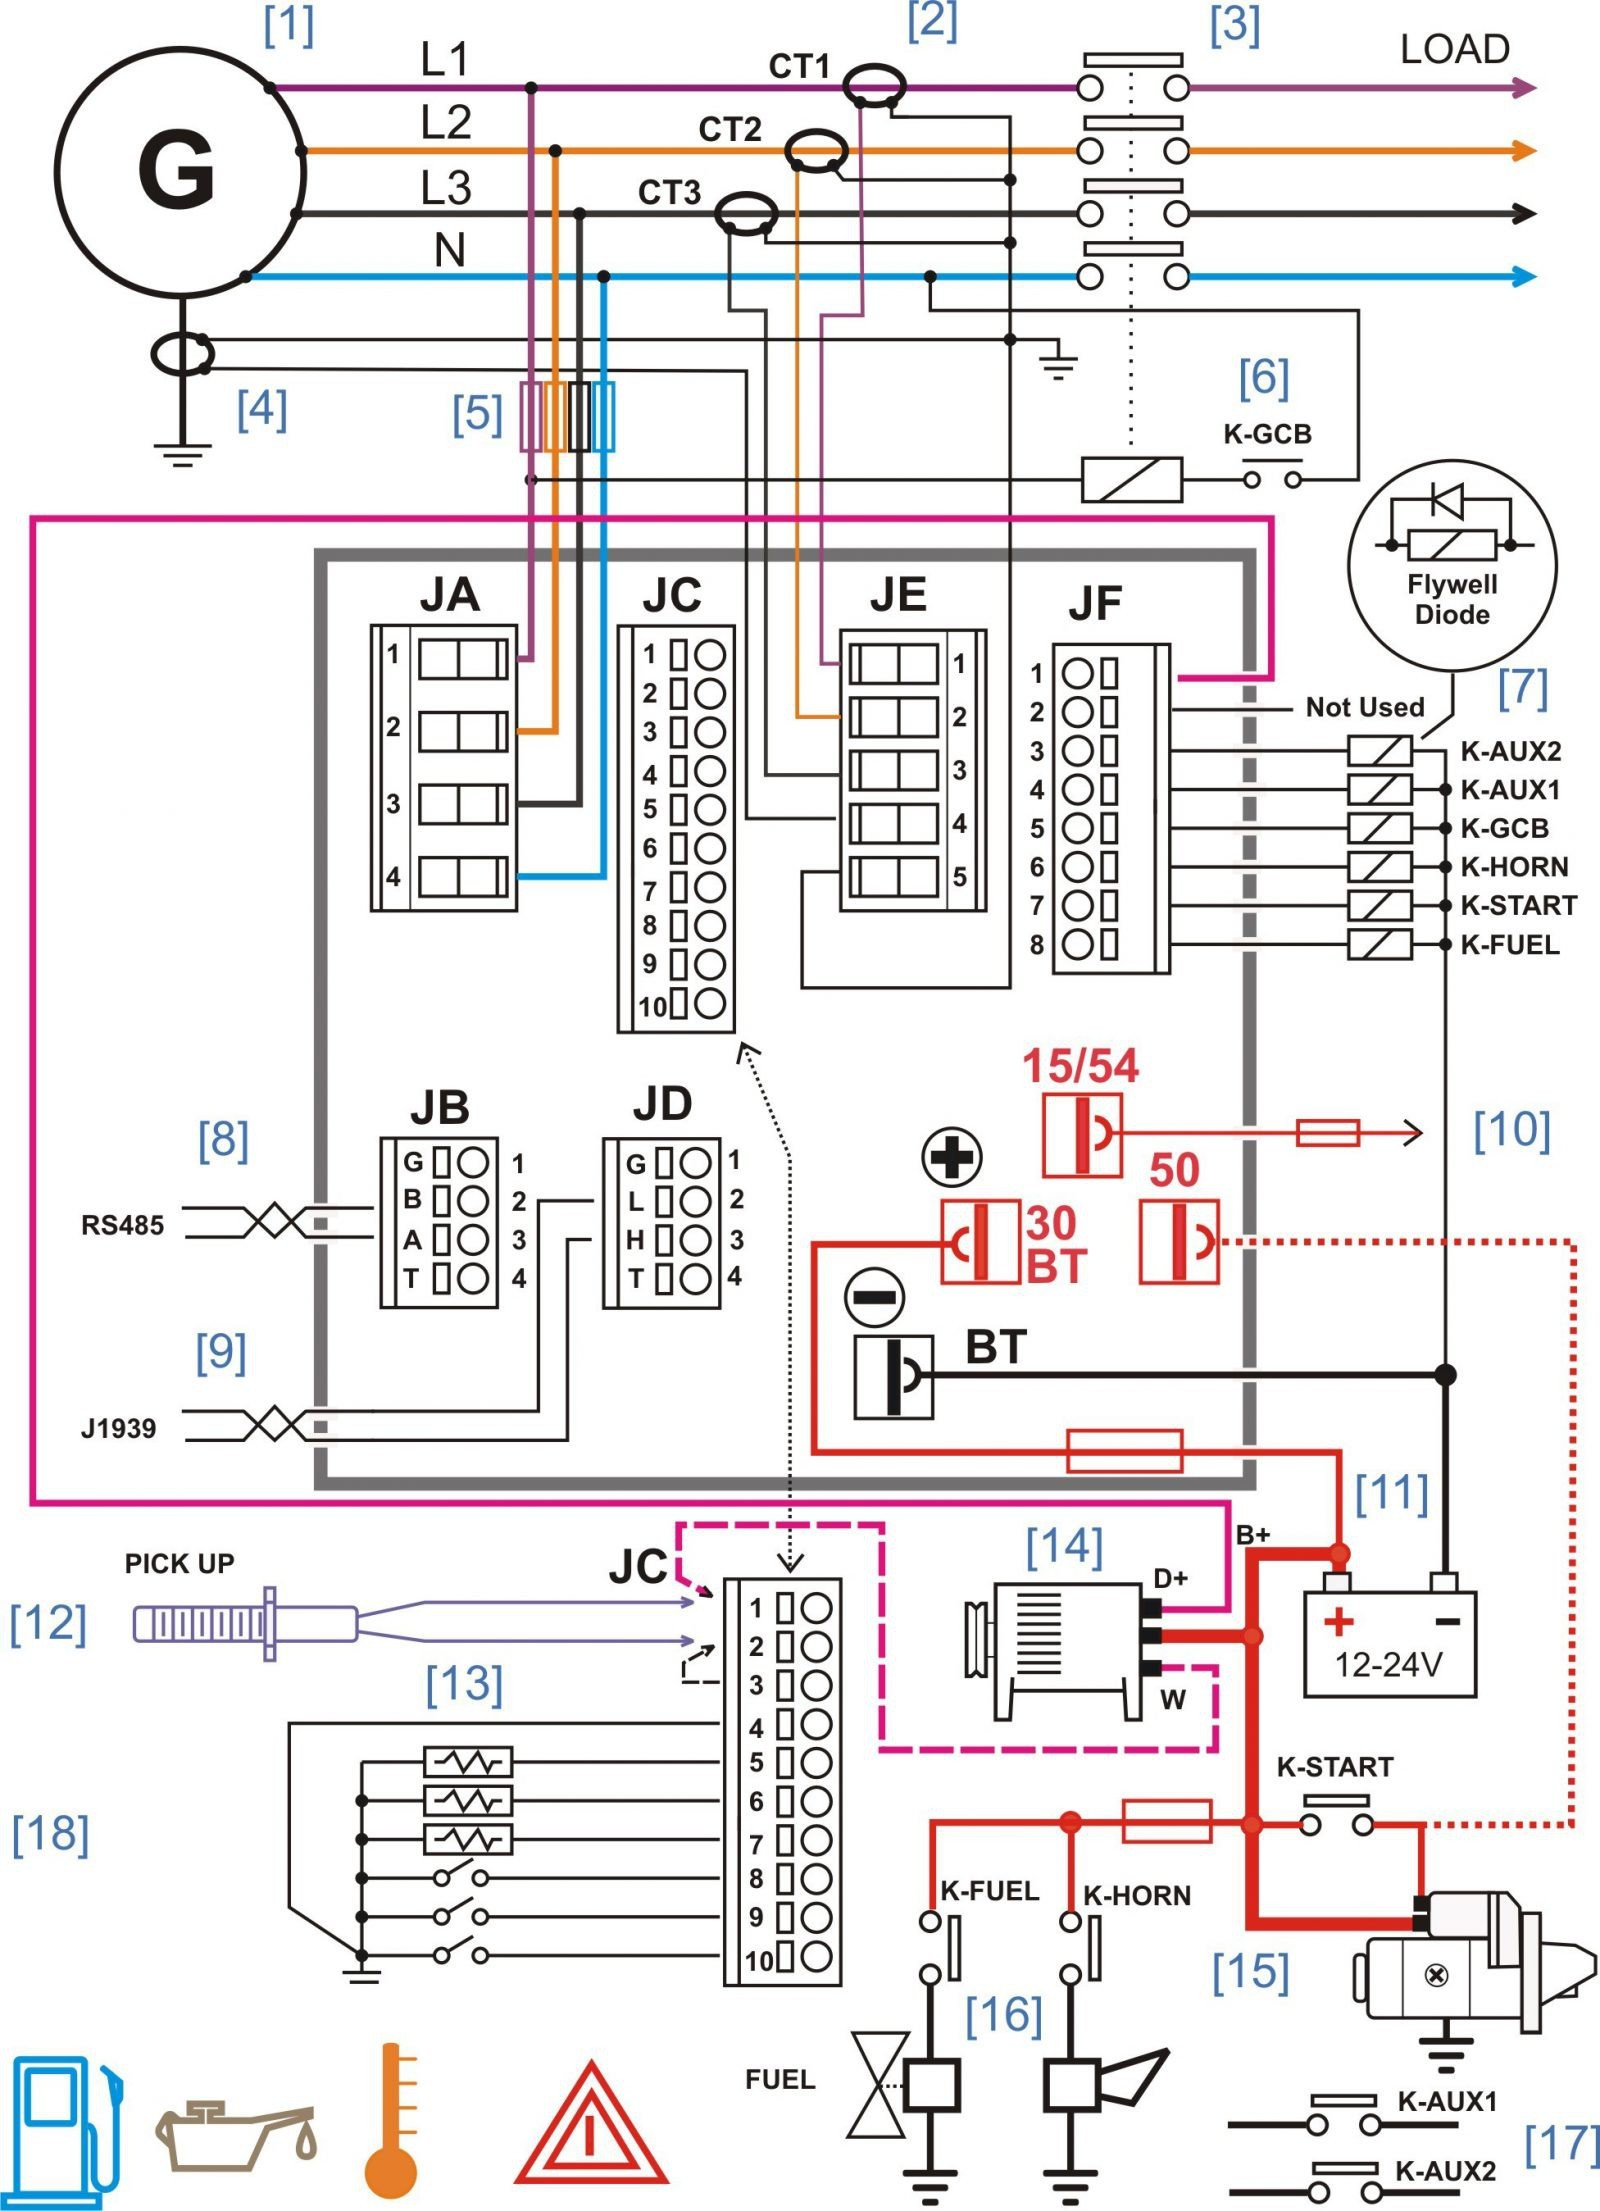 Wiring Diagram for Car Audio Lovely Car Stereo Wiring Diagram Diagram Of Wiring Diagram for Car Audio